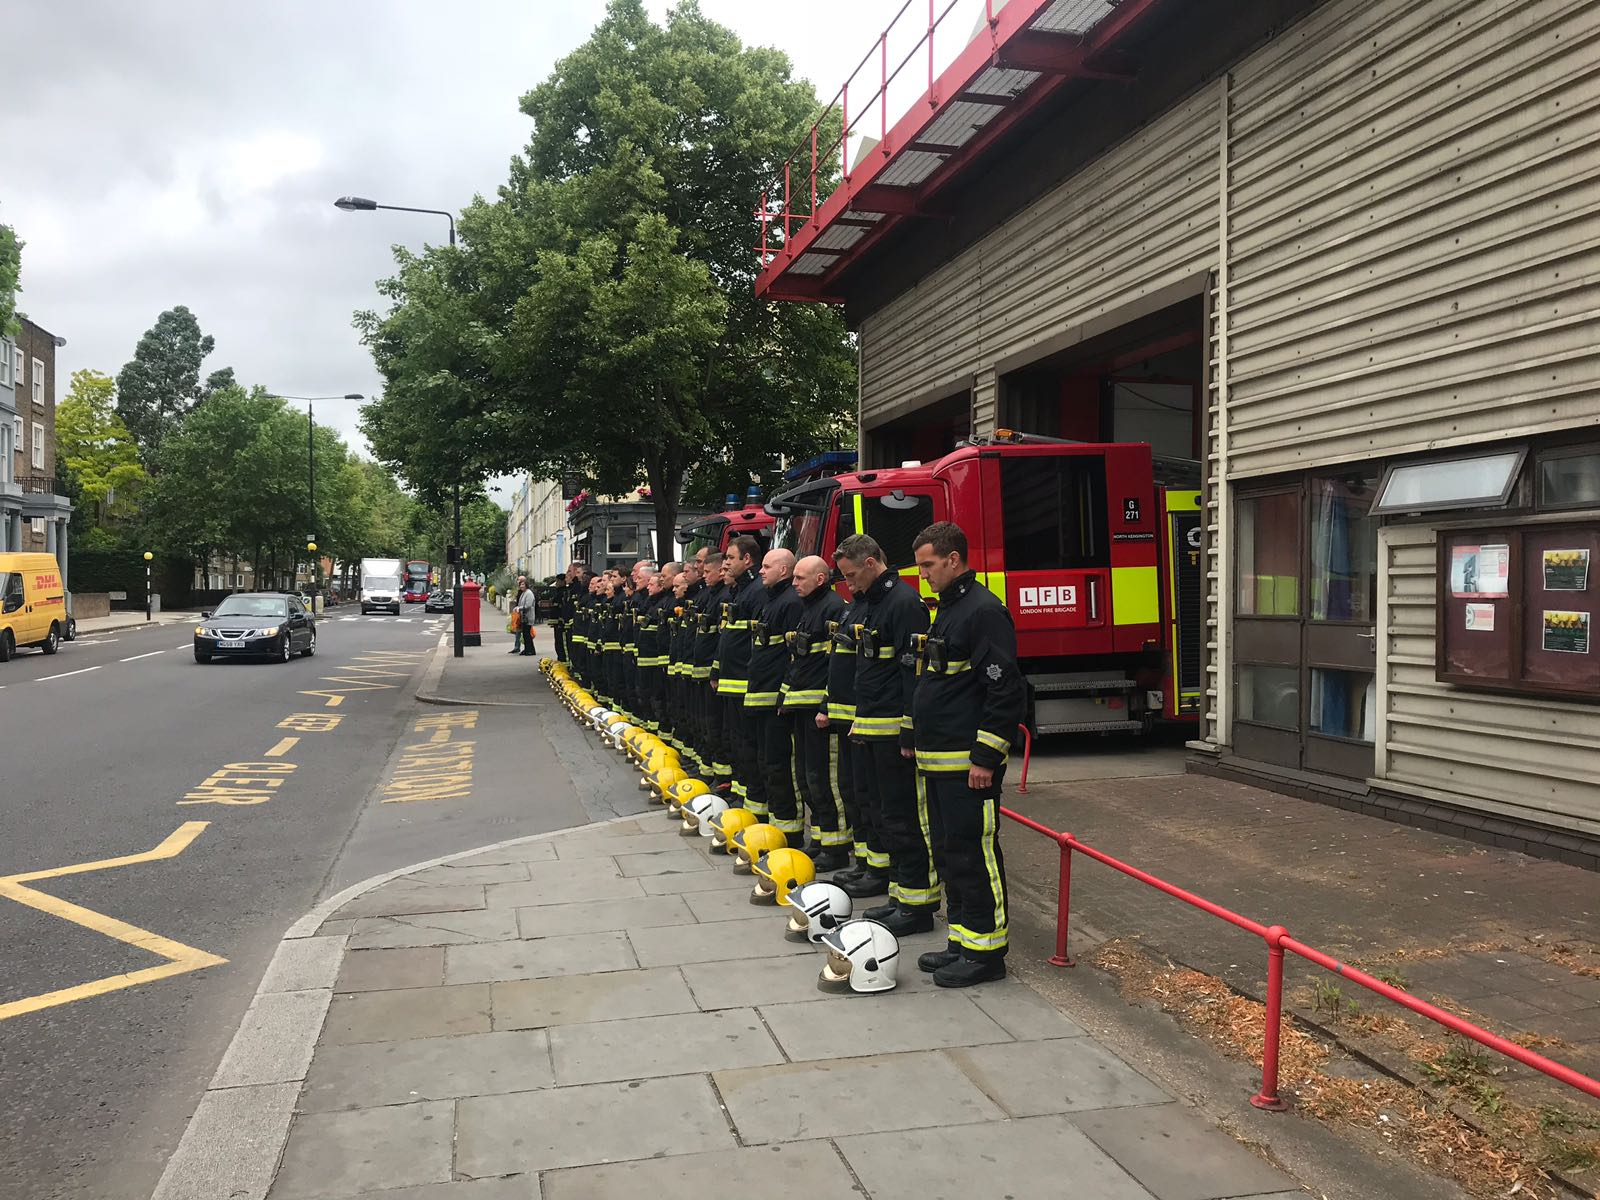 Firefighters outside North Kensington fire station